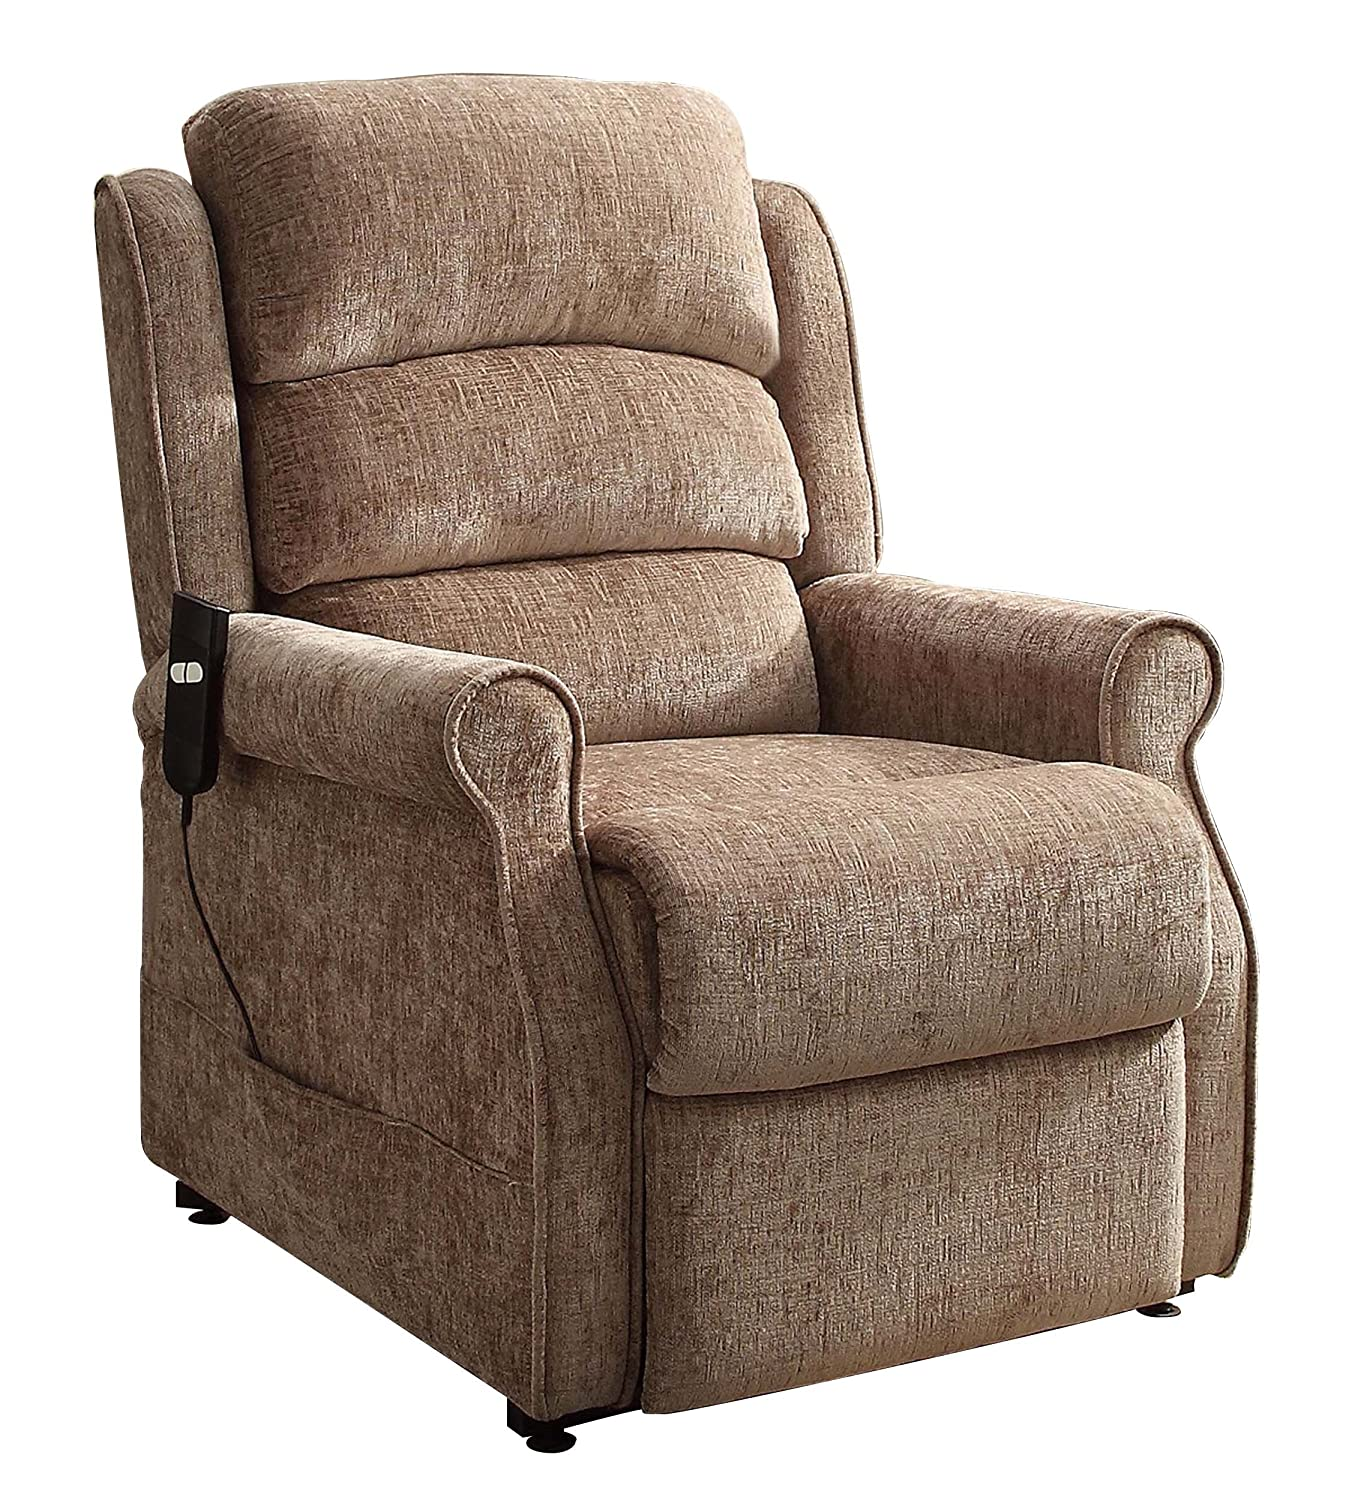 Amazon.com: Homelegance 8509-1LT Power Lift Recliner Chair, Brown ...